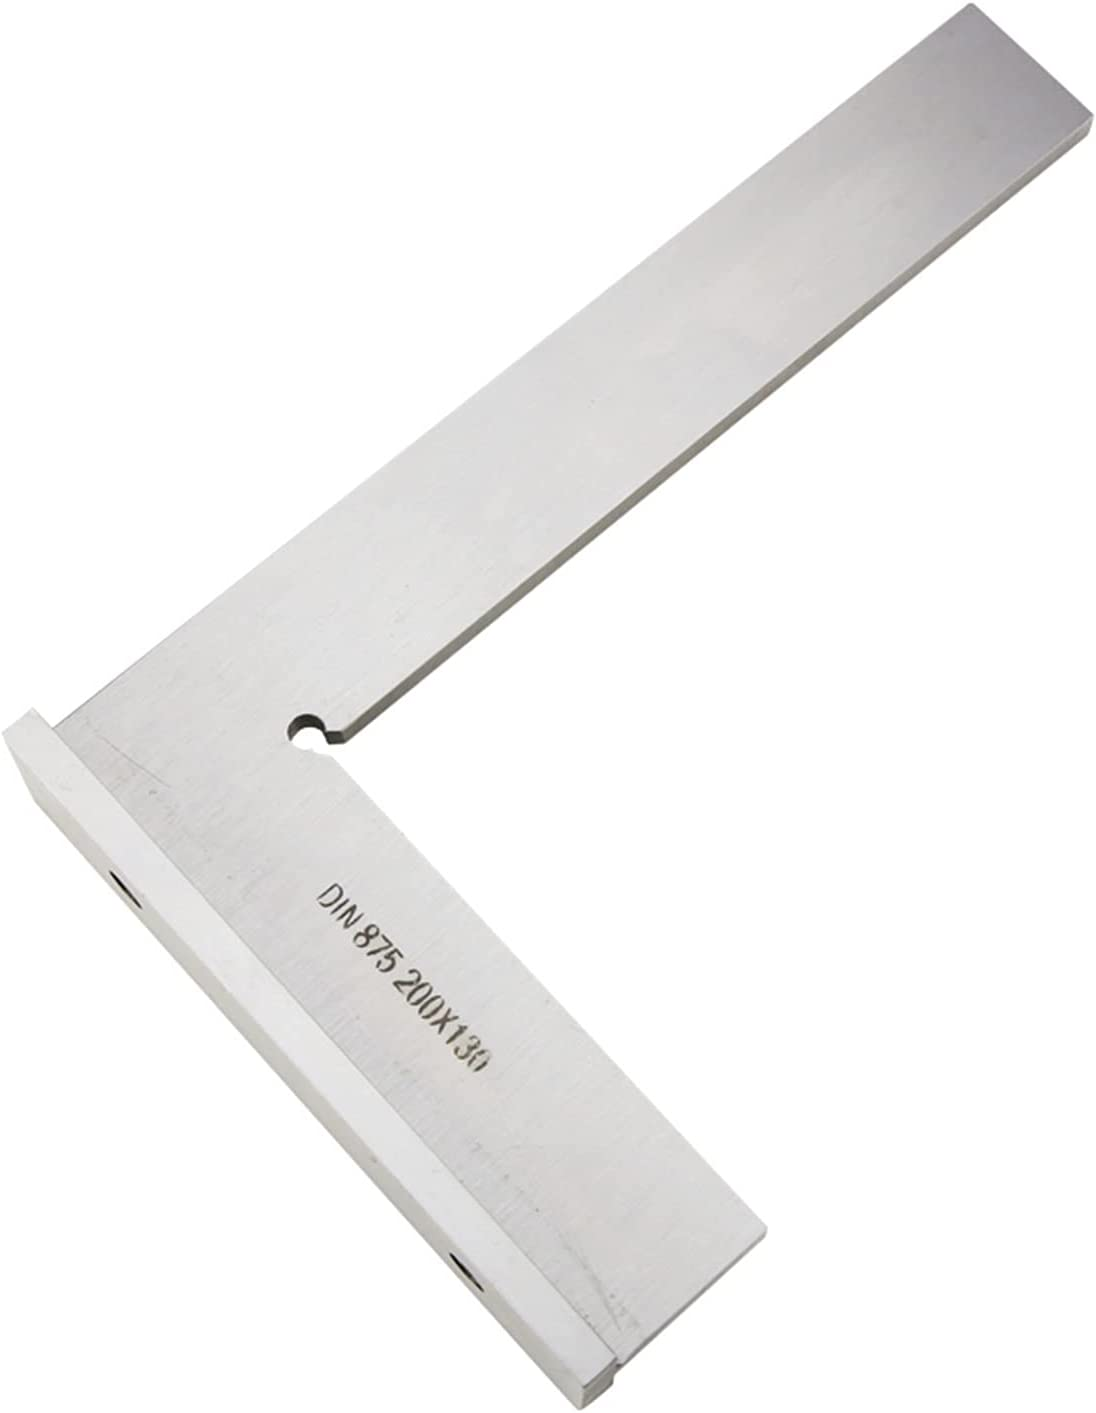 Tool 200x130mm Flat Edge Square Angle Ruler Finally popular brand Degree Today's only With 90